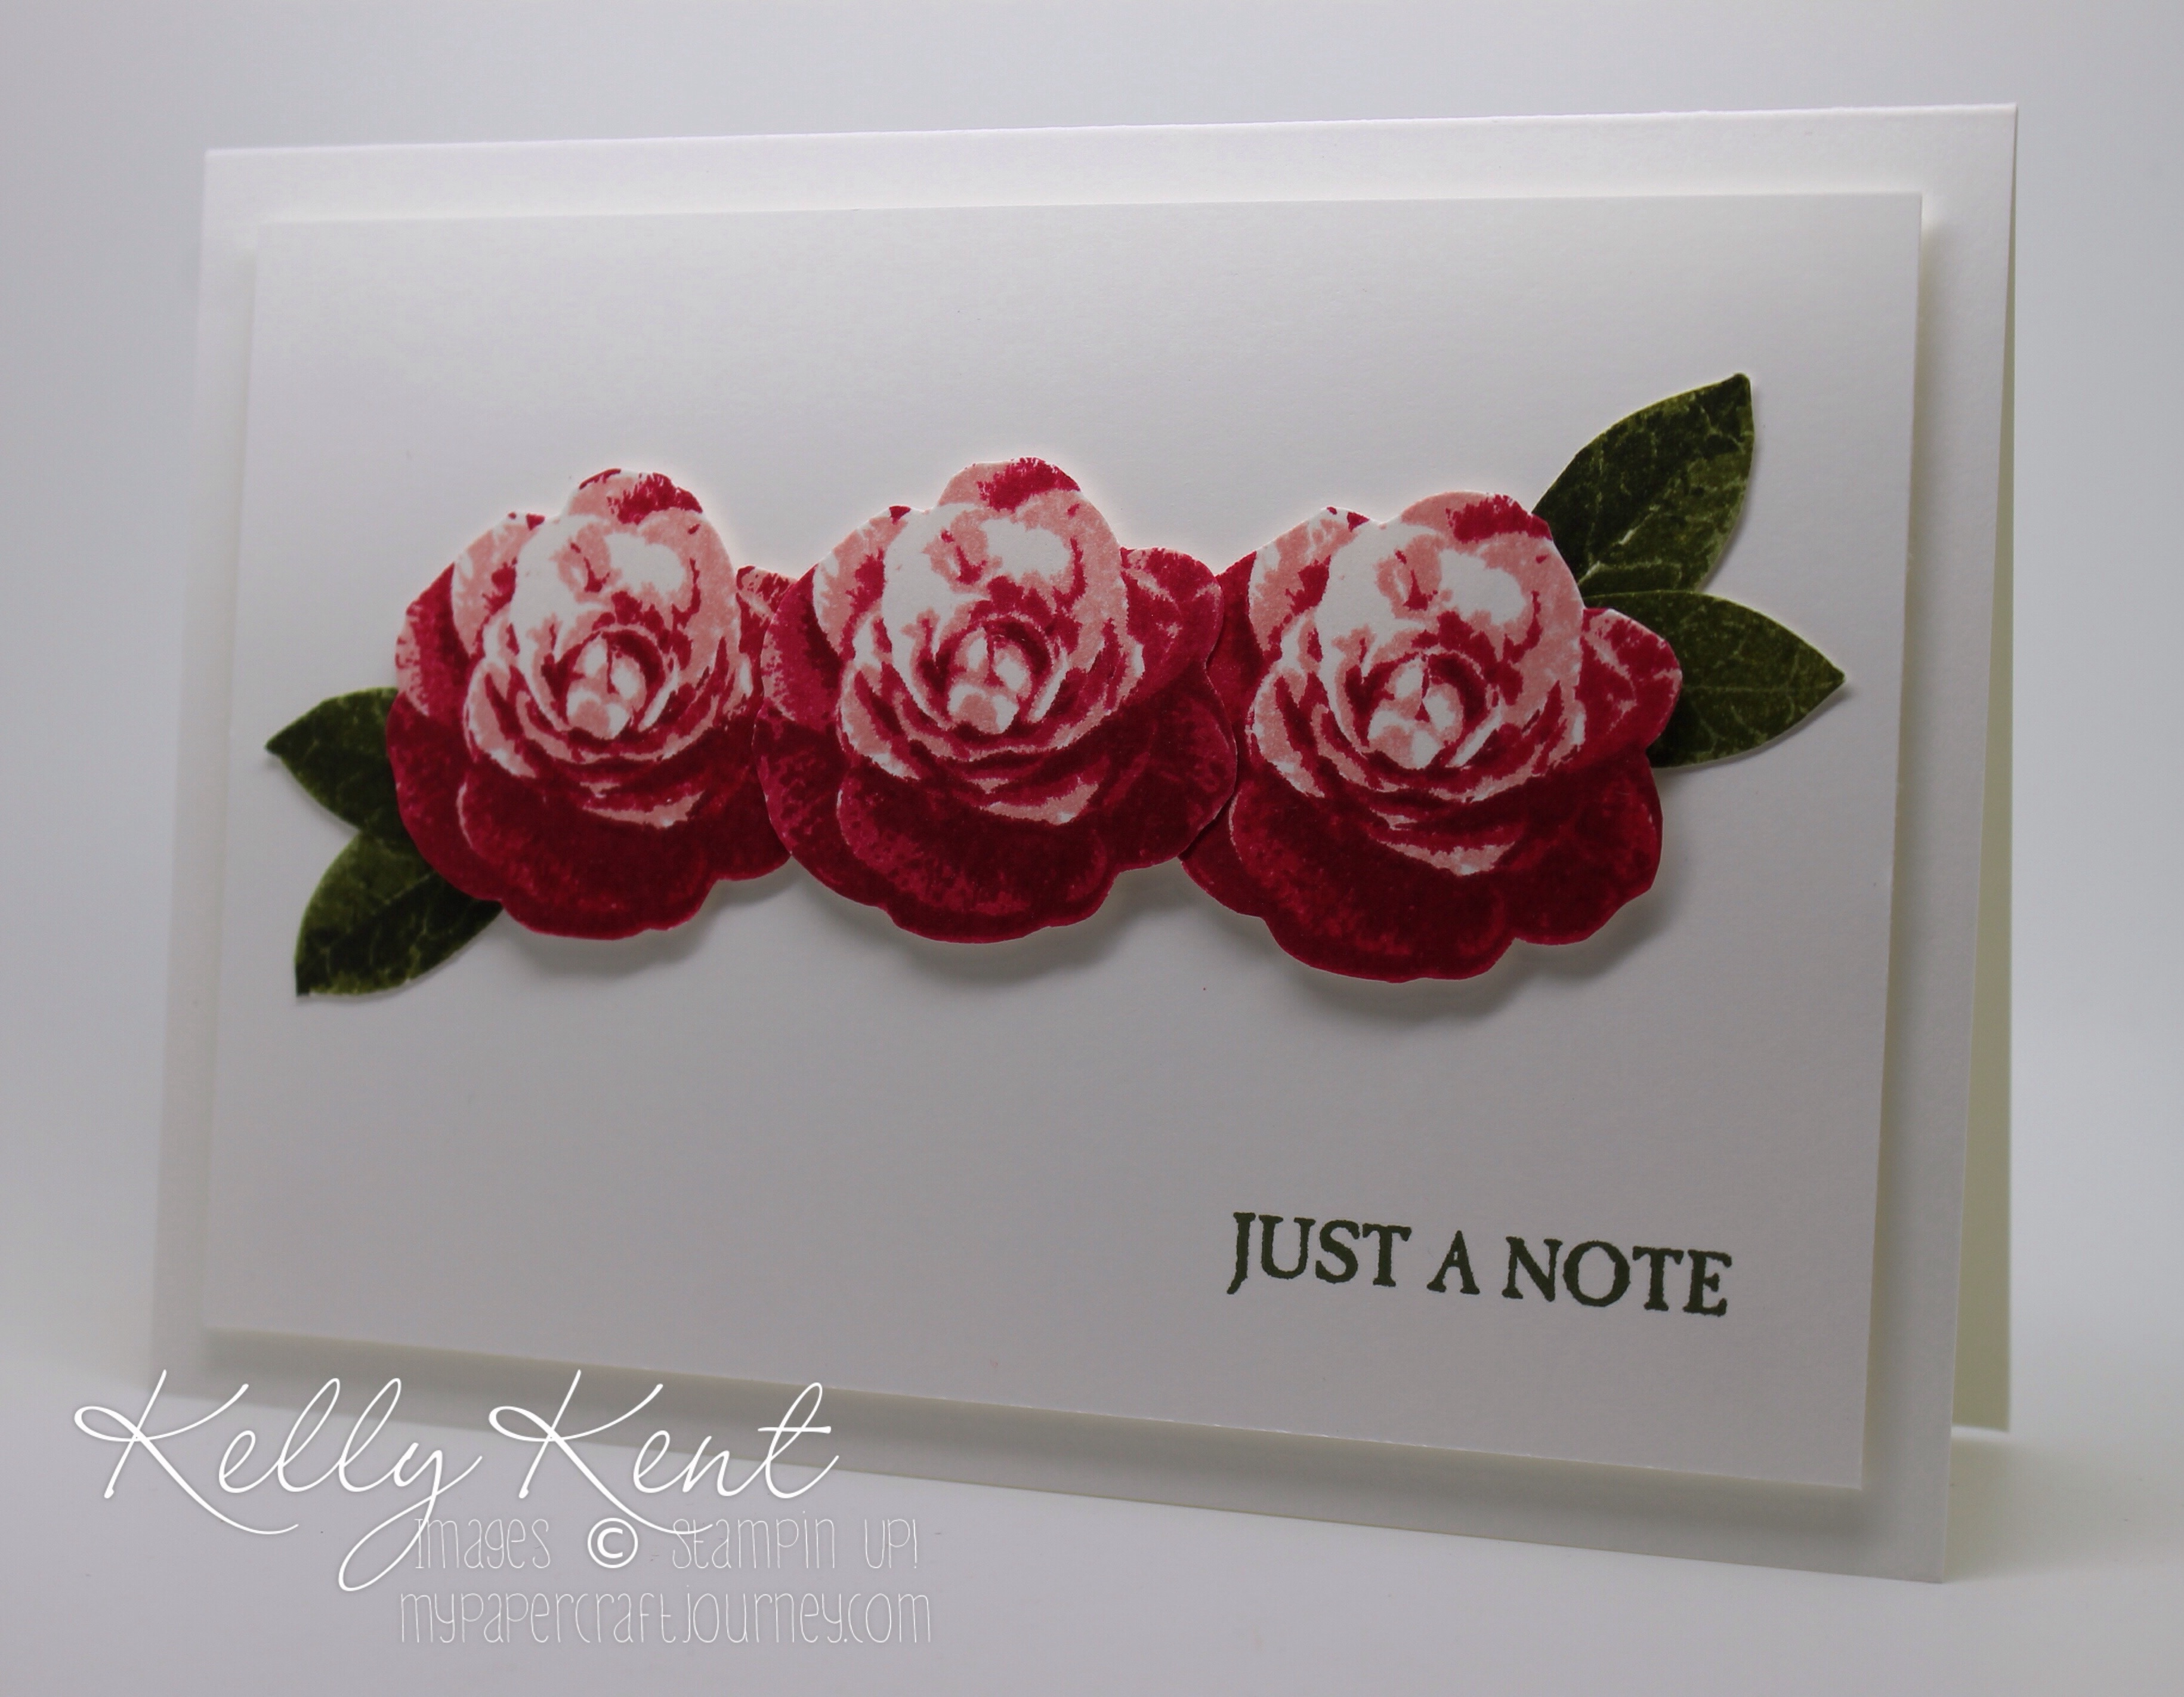 Clean & Simple: Nature GDP#031. Picture Perfect Roses. Kelly Kent -mypapercraftjourney.com.